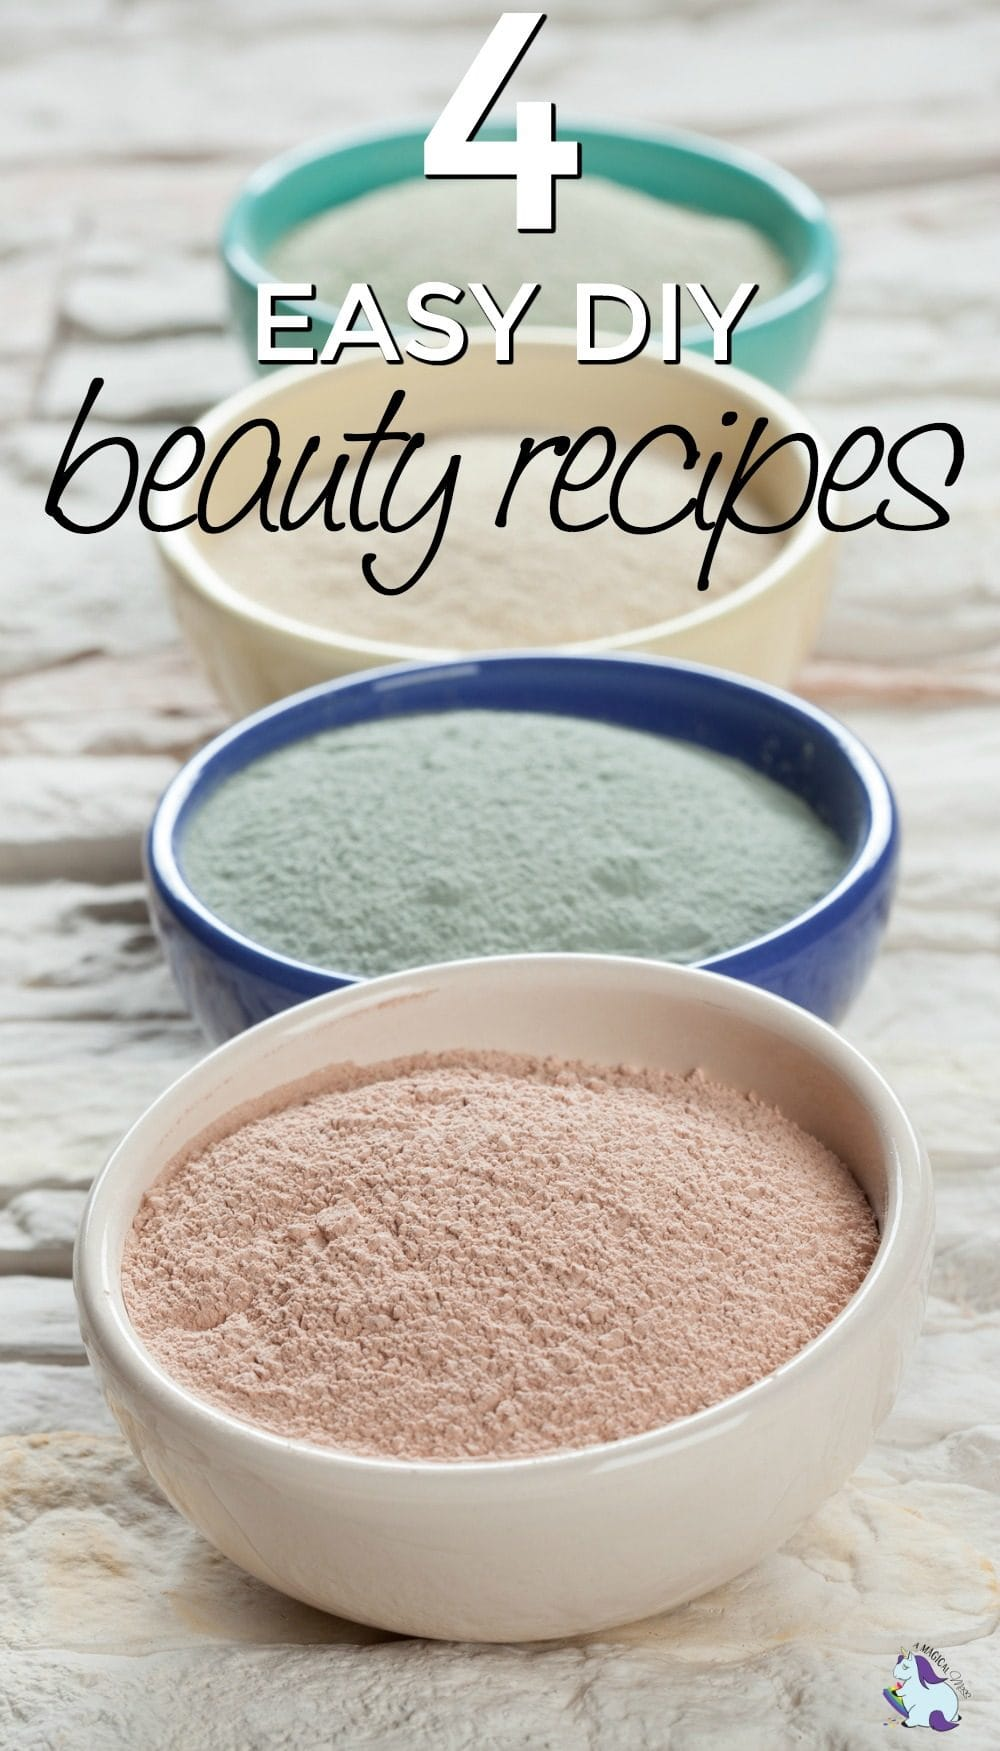 Composition of ceramic bowls with different types of sea clay powder: white, pink, green and blue; concept of facial and body treatment